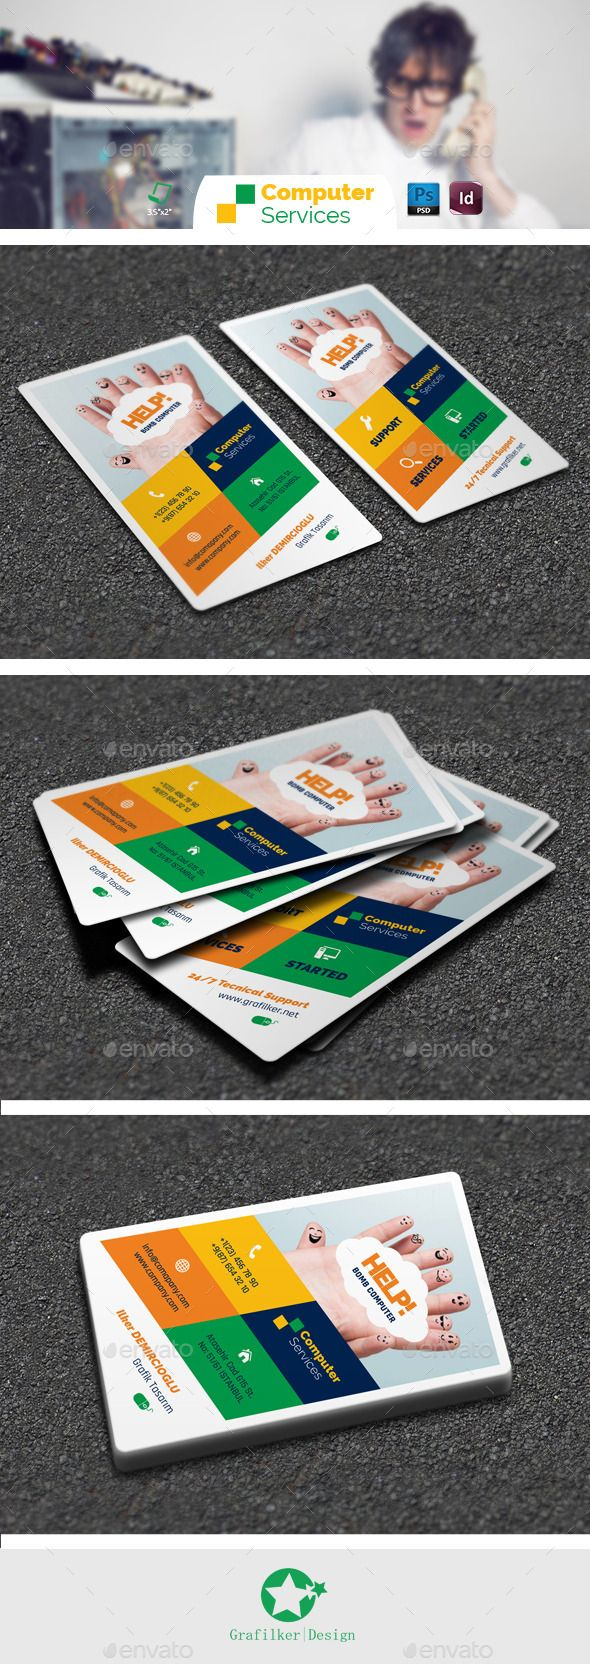 Computer repair business card templates card templates business computer repair business card templates creative business cards download here http accmission Image collections